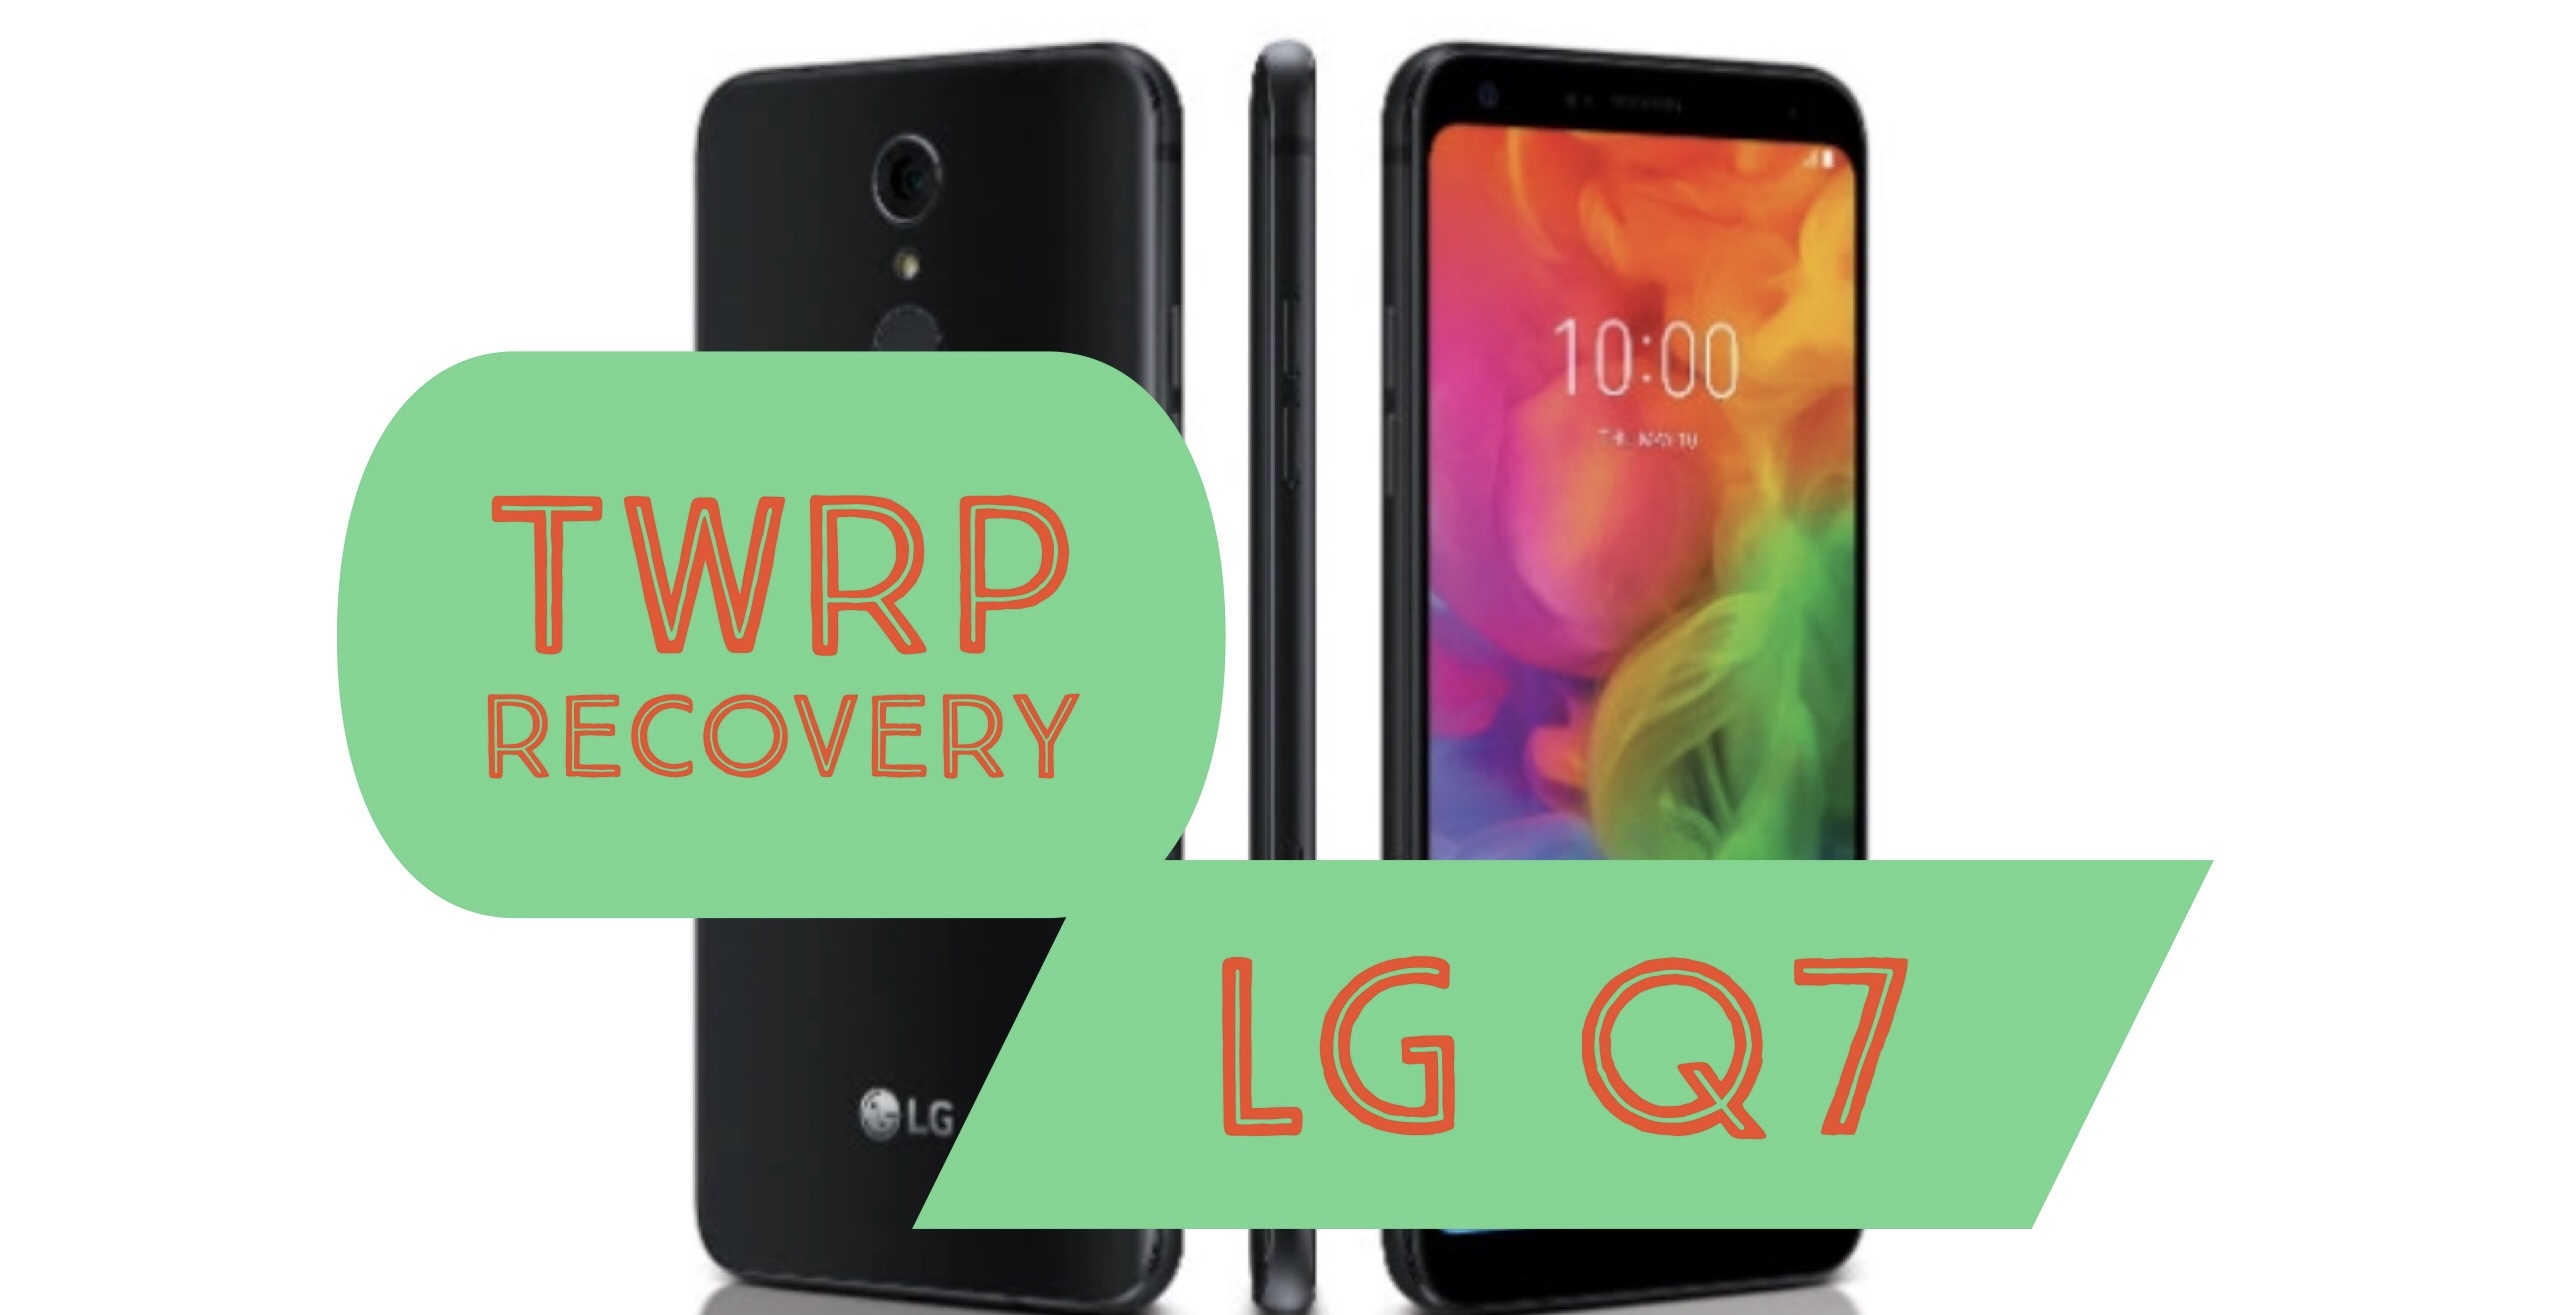 How to Install TWRP Recovery on LG Q7: Step by Step!